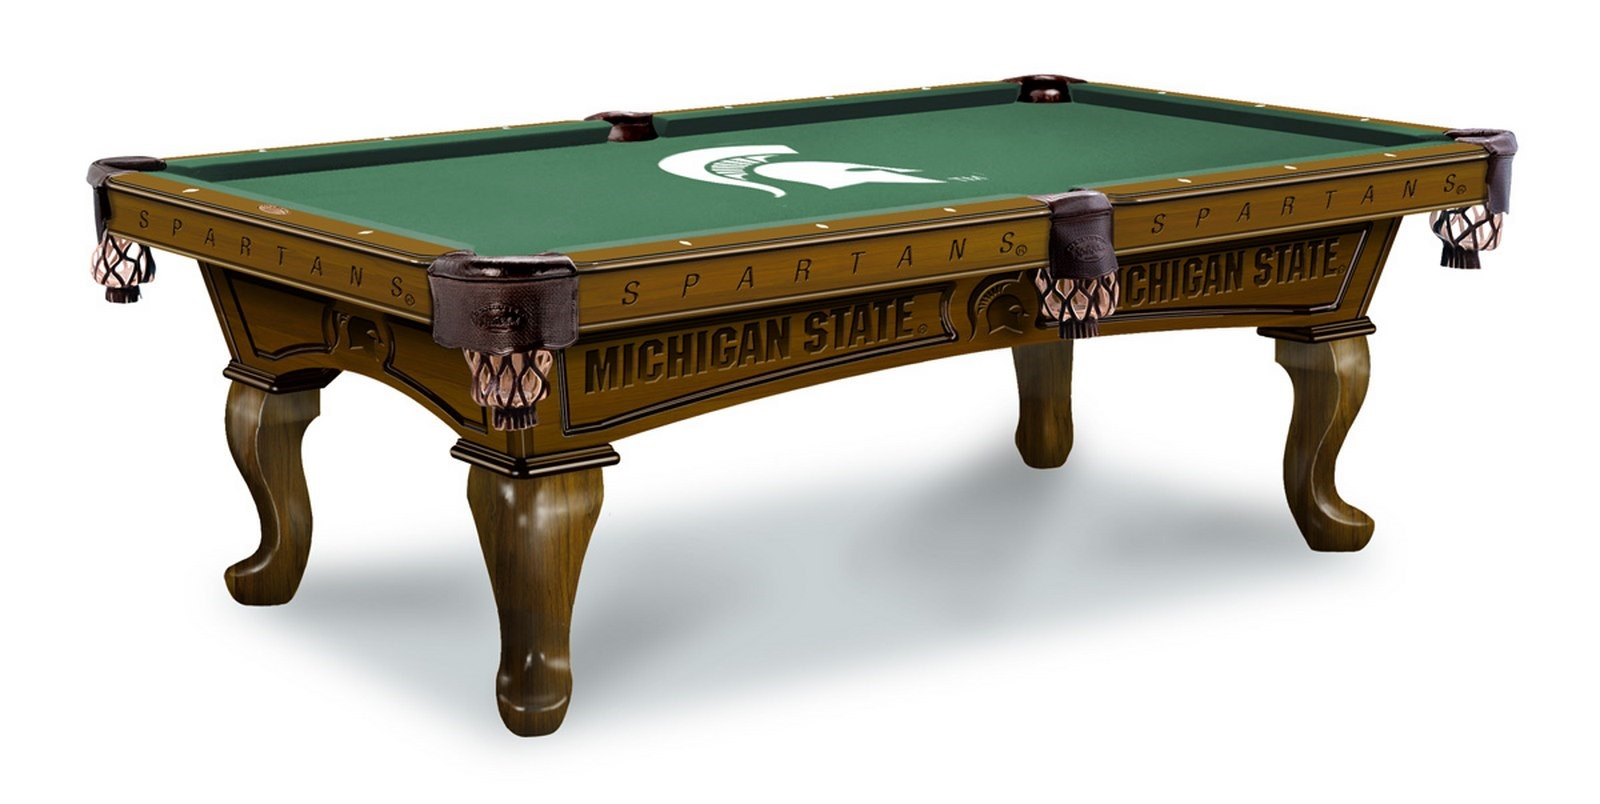 Michigan State University Pool Table 100% made in USA